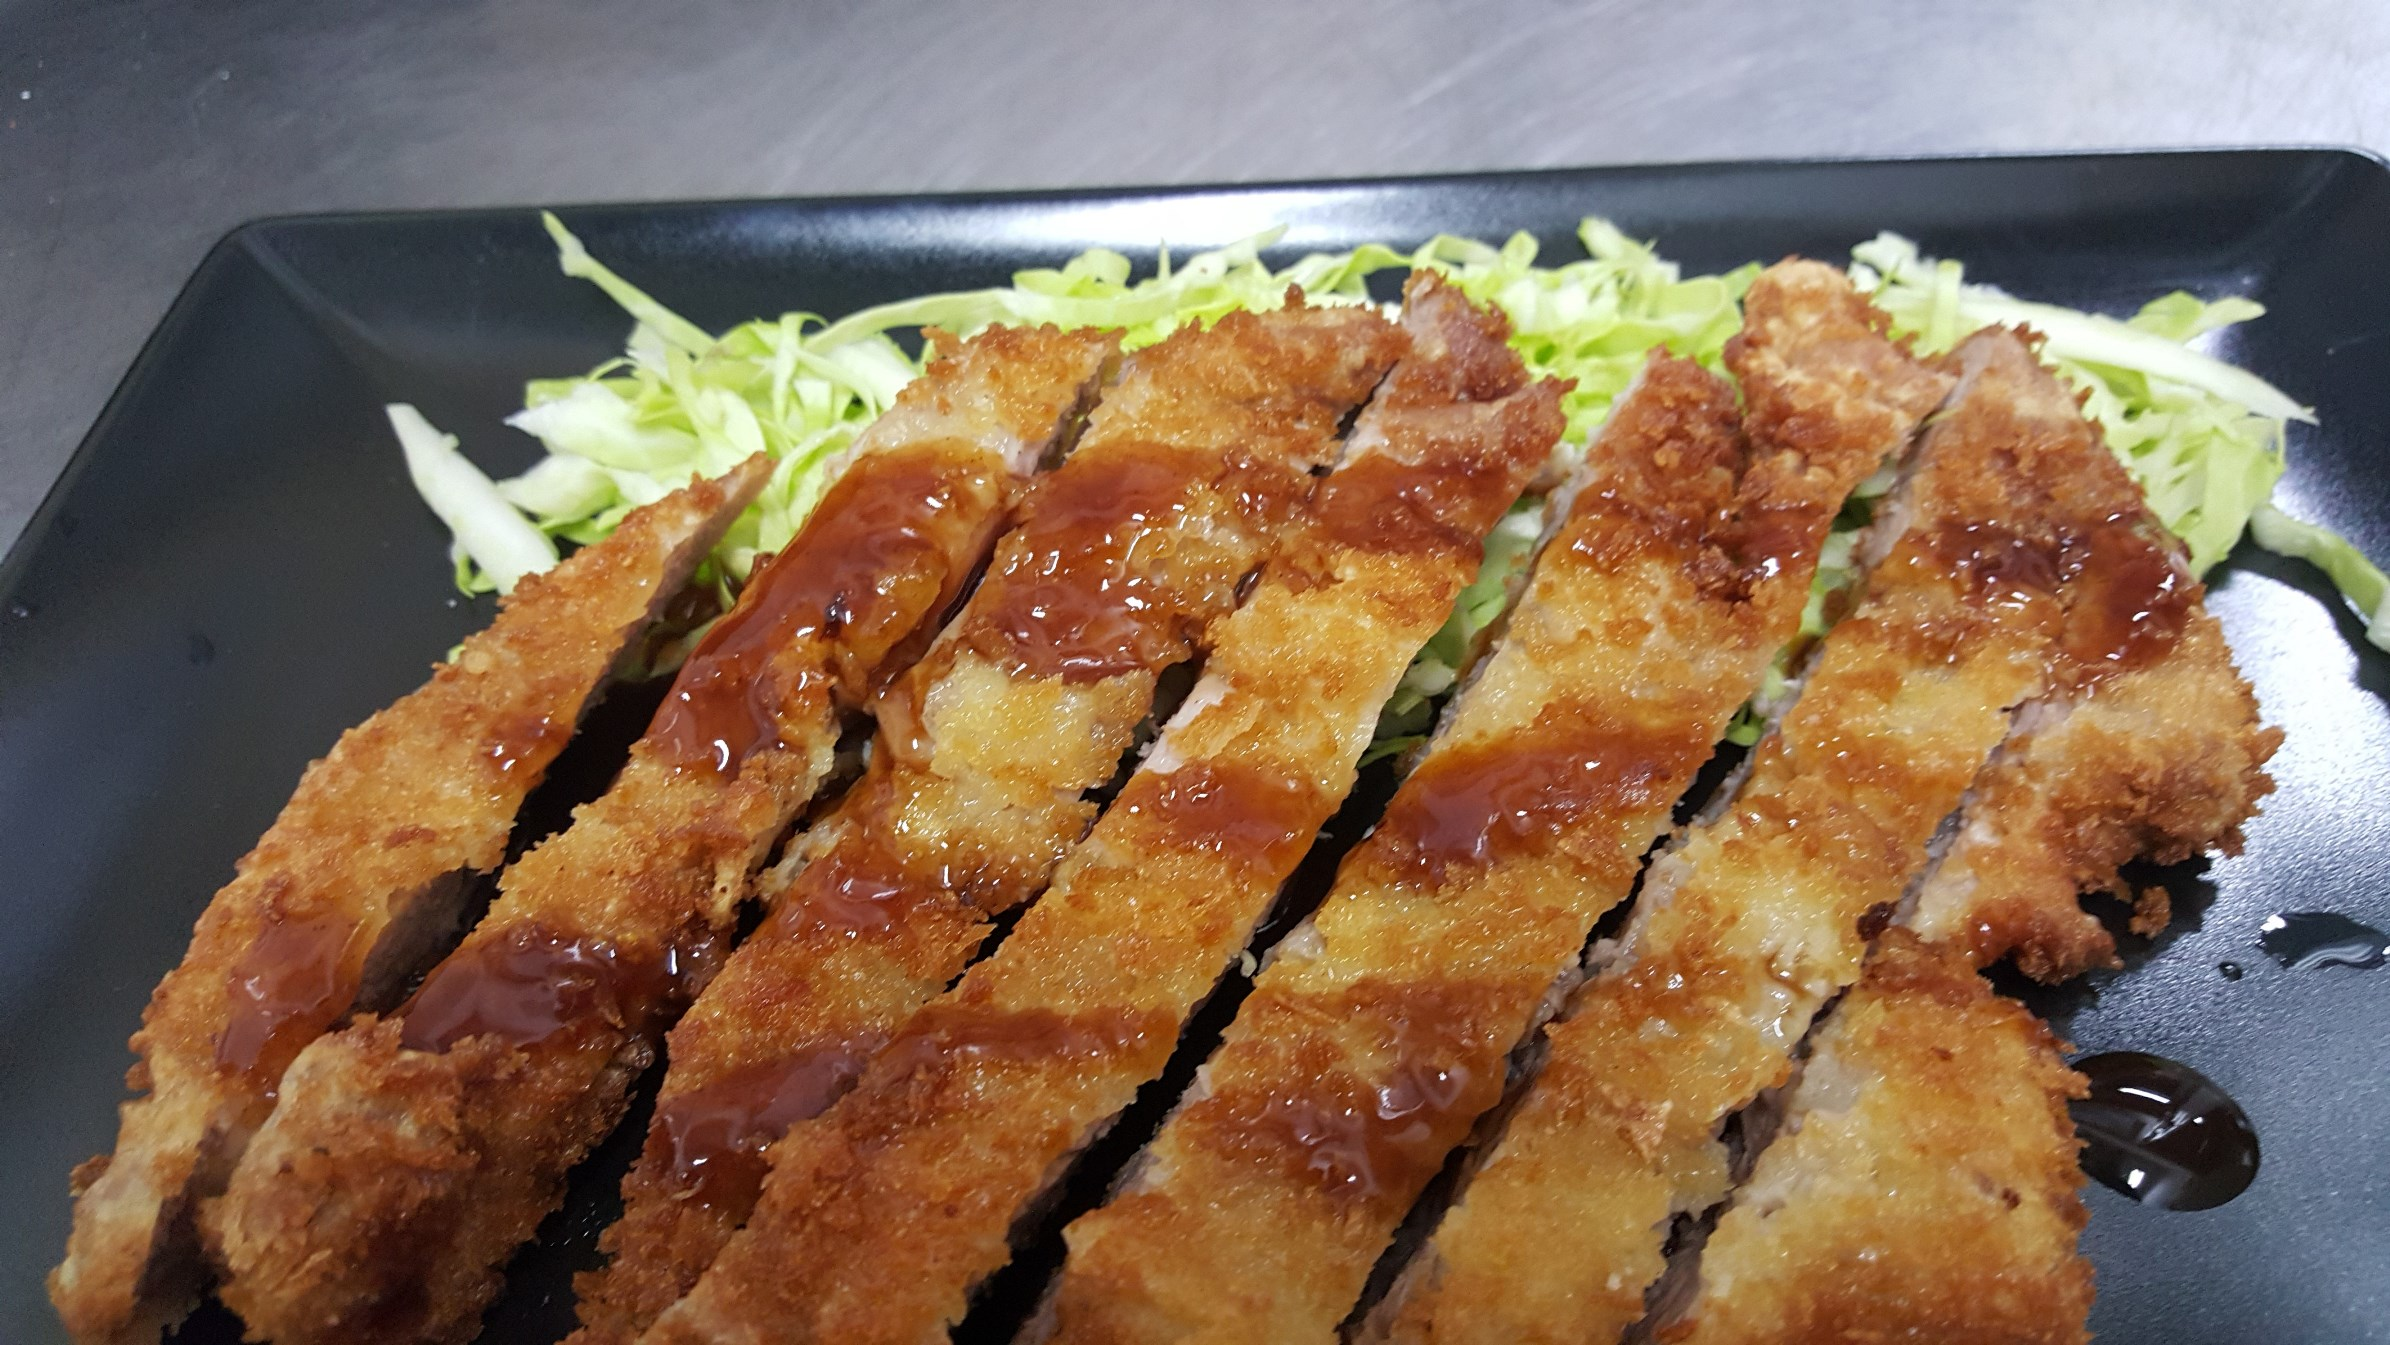 TONKATSU - pork bon fillet, deep fried in panko bread crumbs with Tonkatsu sauce